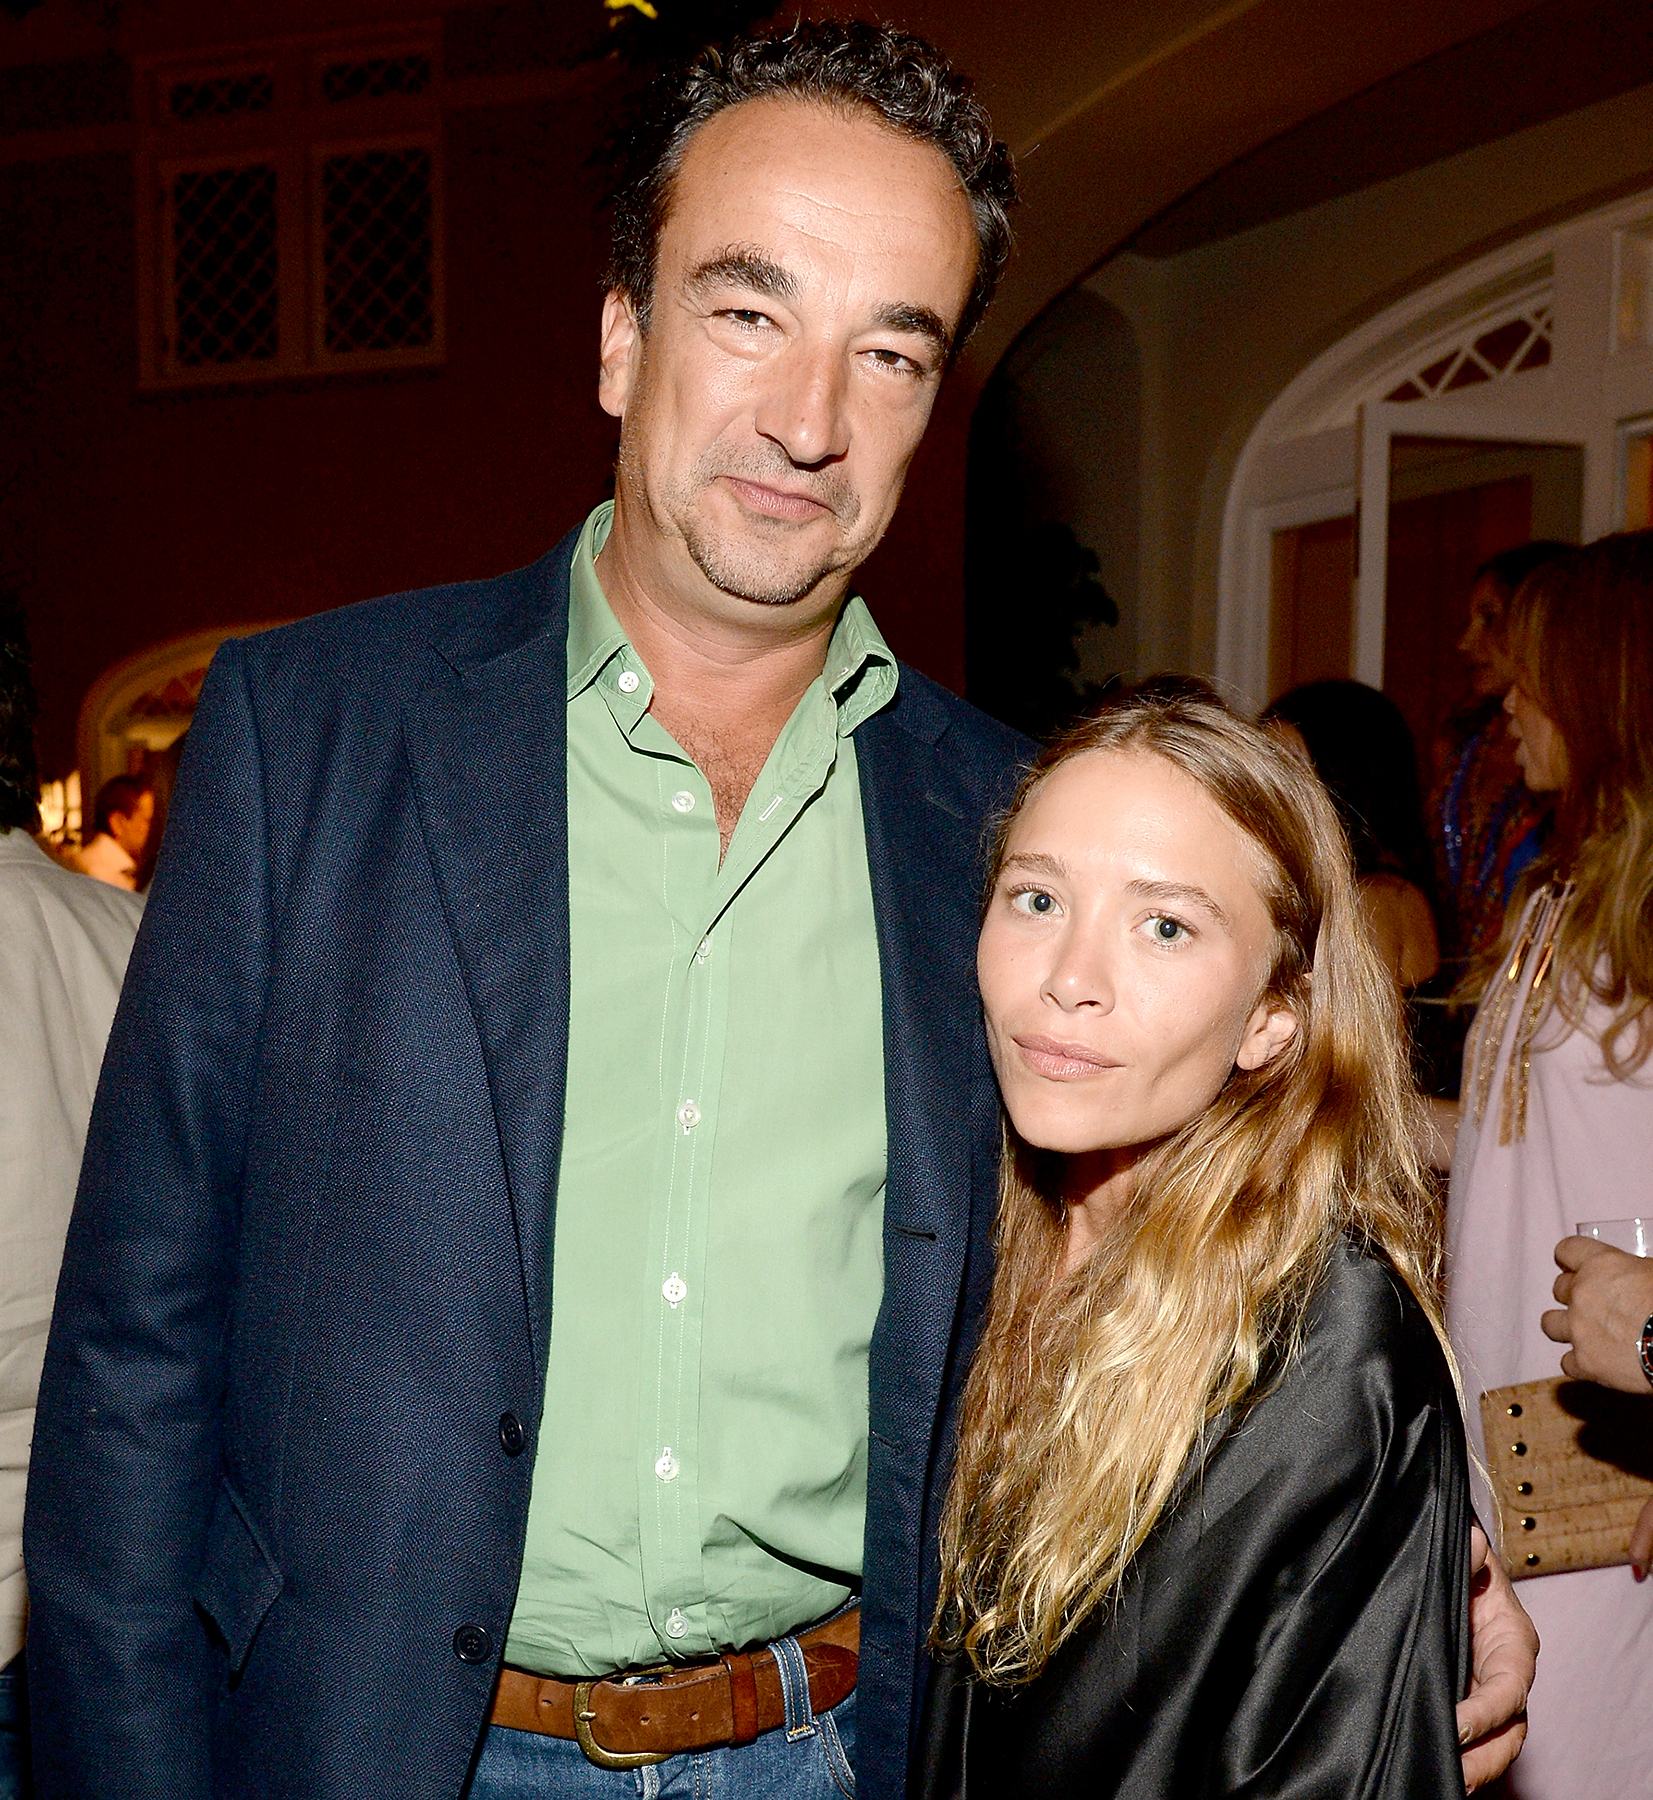 Olivier Sarkozy And Mary Kate Olsen Attend Apollo In The Hamptons 2017